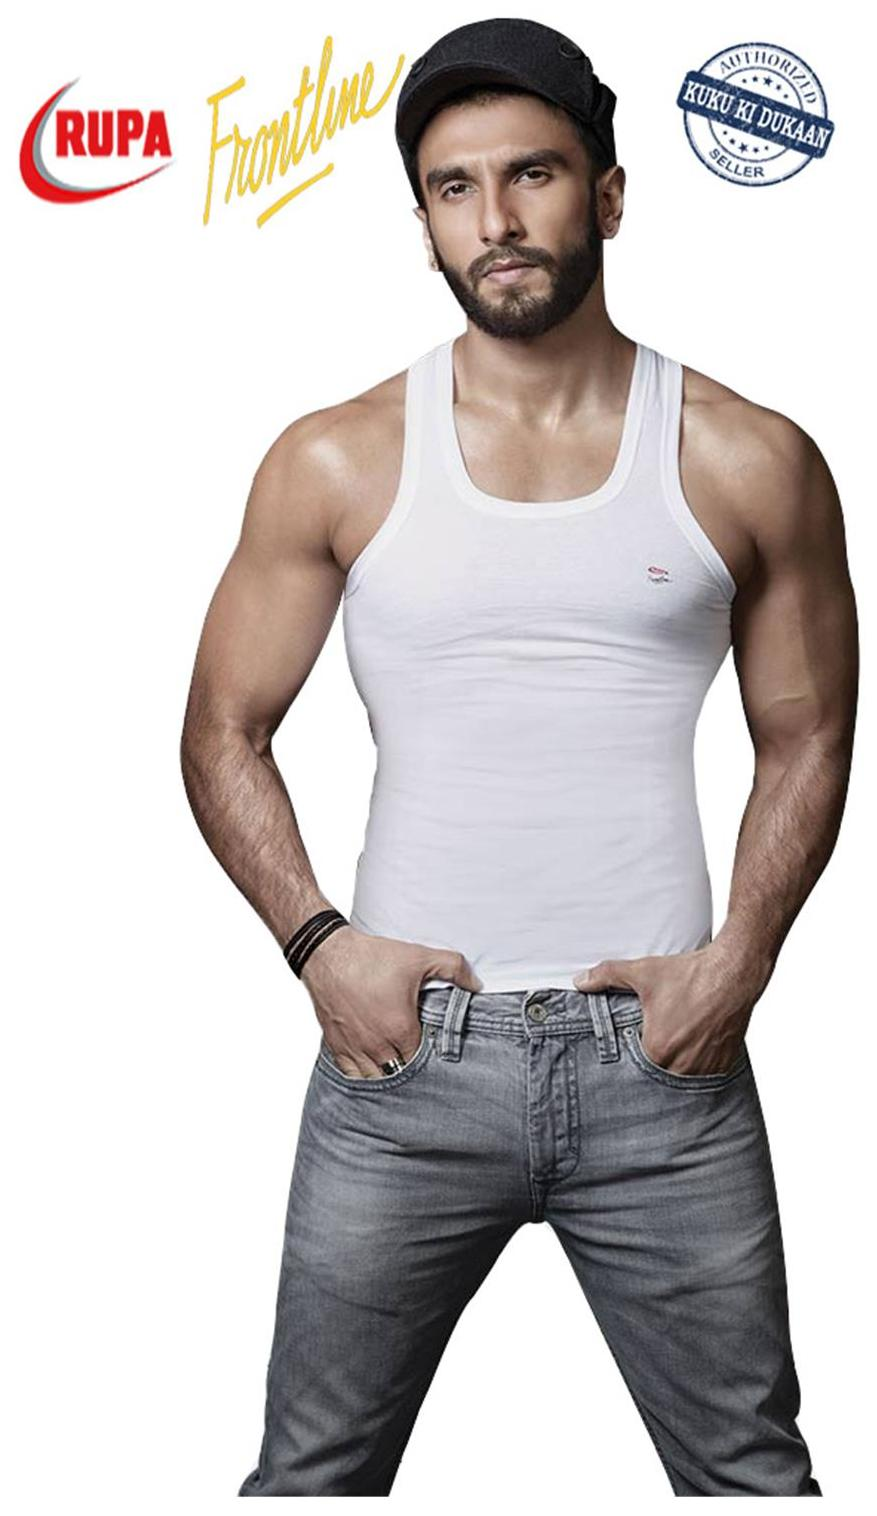 9ac51ac2cedf Innerwear Starting Rs49 (Jockey, Dixcy & More) fashion & apparels- Deals